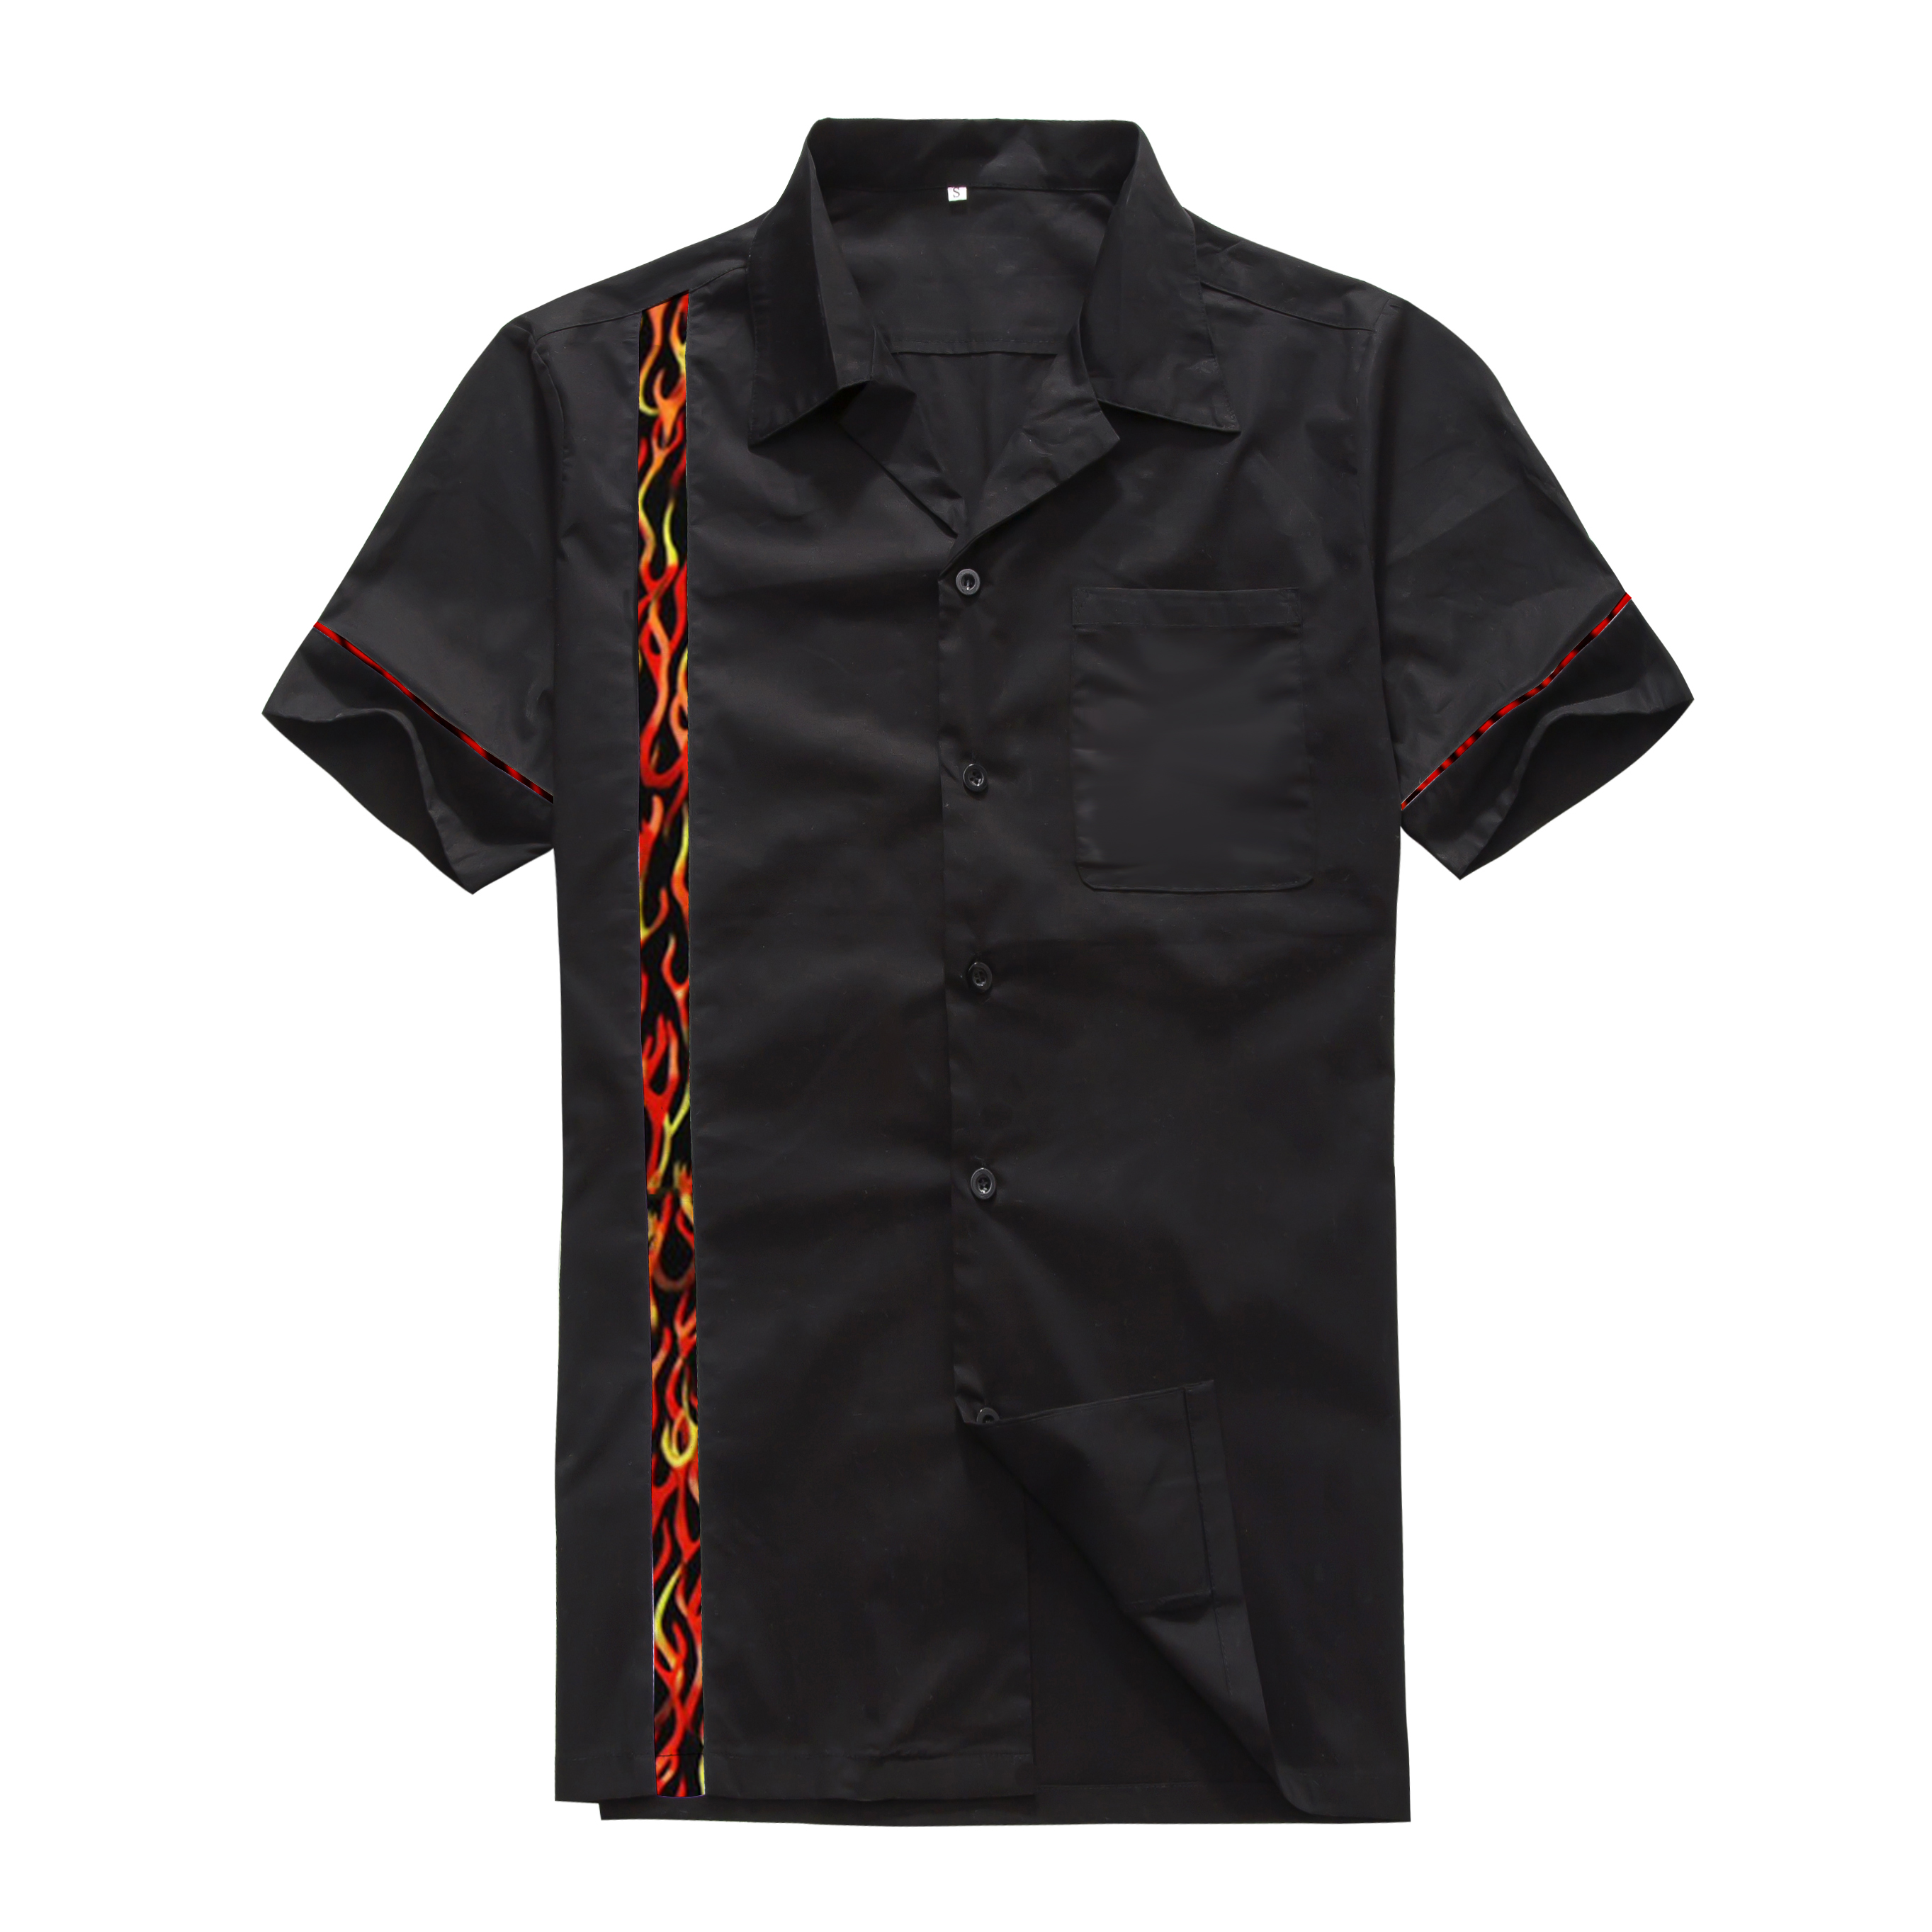 Shirt design new look - Candow Look Vintage Clothing Online Men S Cotton Short Sleeves 50s 60s Rockabilly New Designs Flame Panel